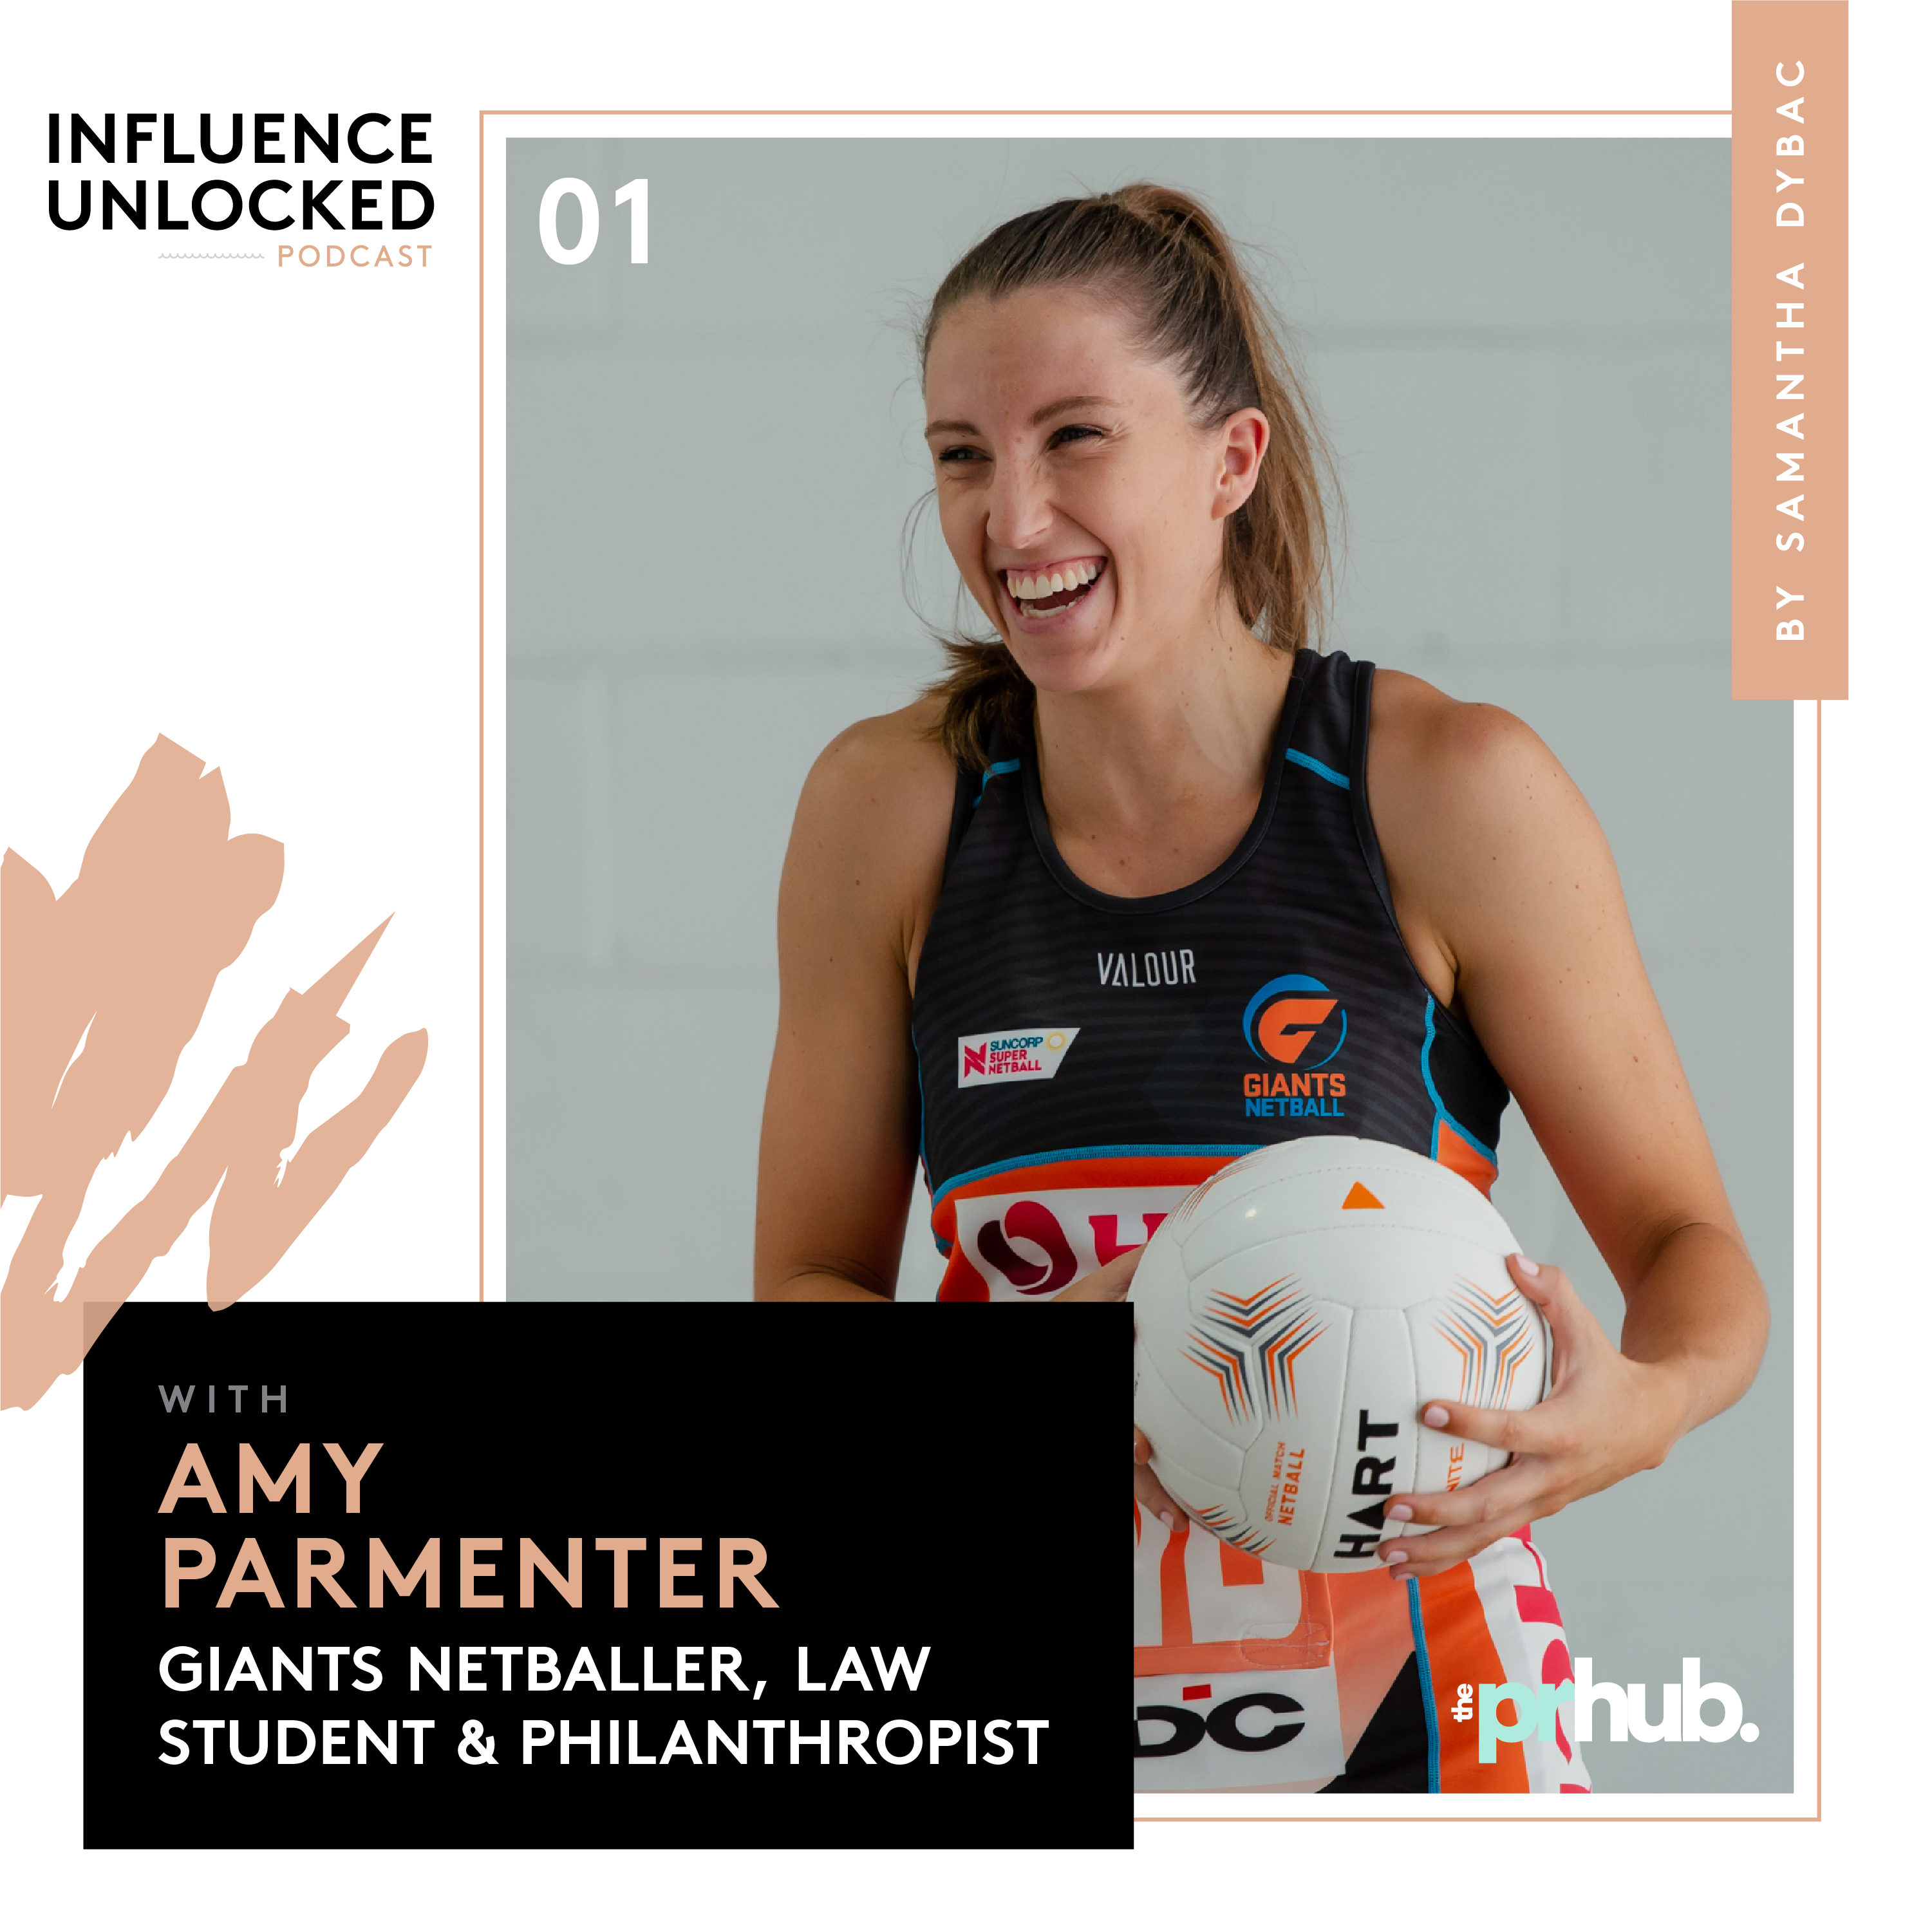 Influence-Unlocked-Amy-Parmenter-Episode 1 - heart-giant